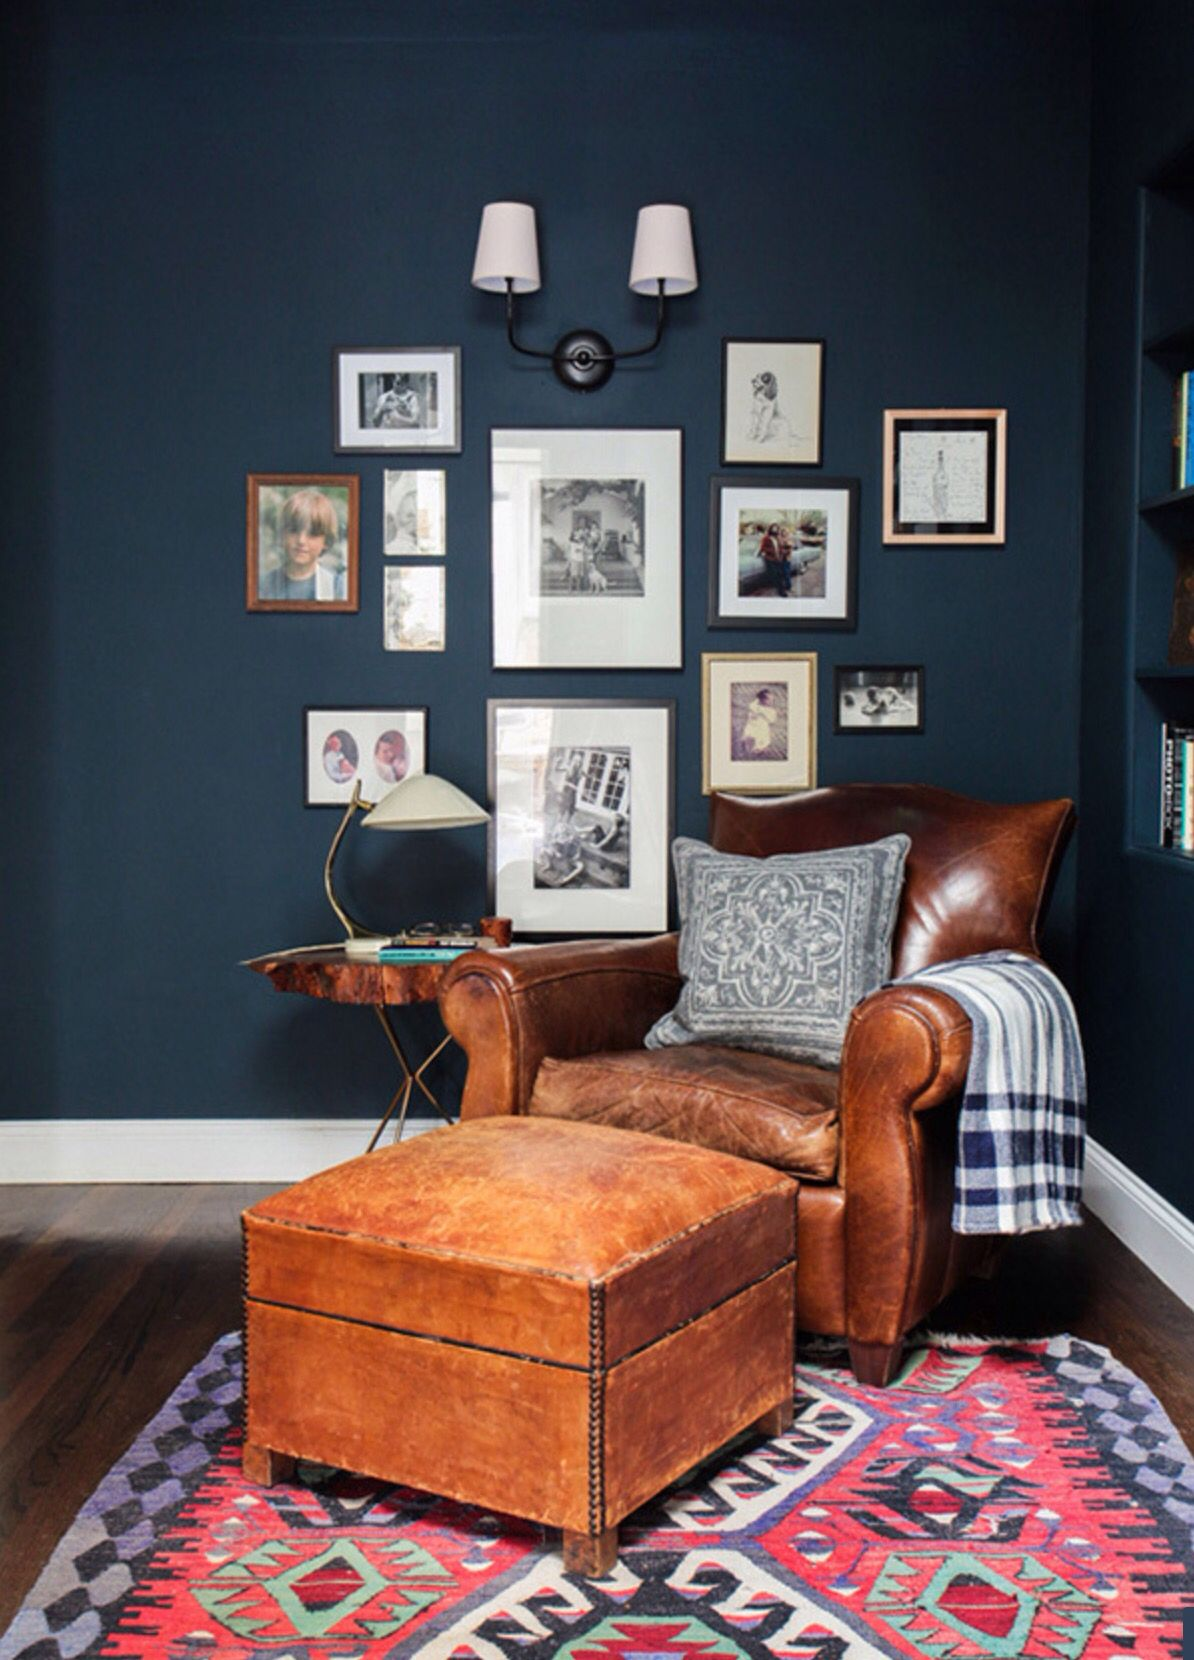 Best Vintage Leather Chair In Bourbon With Navy Walls And Gallery Wall Living Room Inspiration 400 x 300